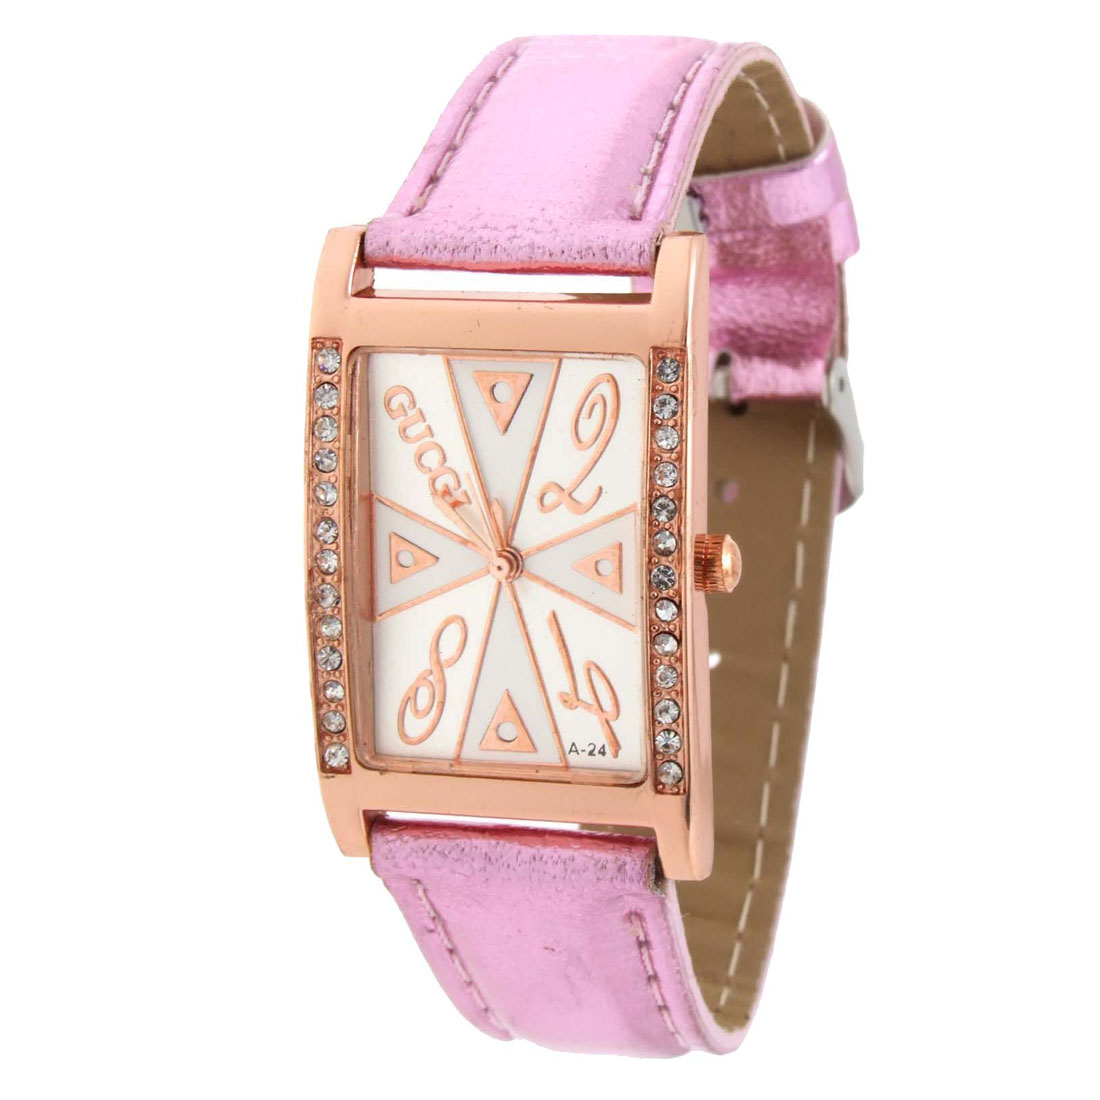 Fashion Jewelry Pink Faux Leather Wrist Quartz Watch - Inactive